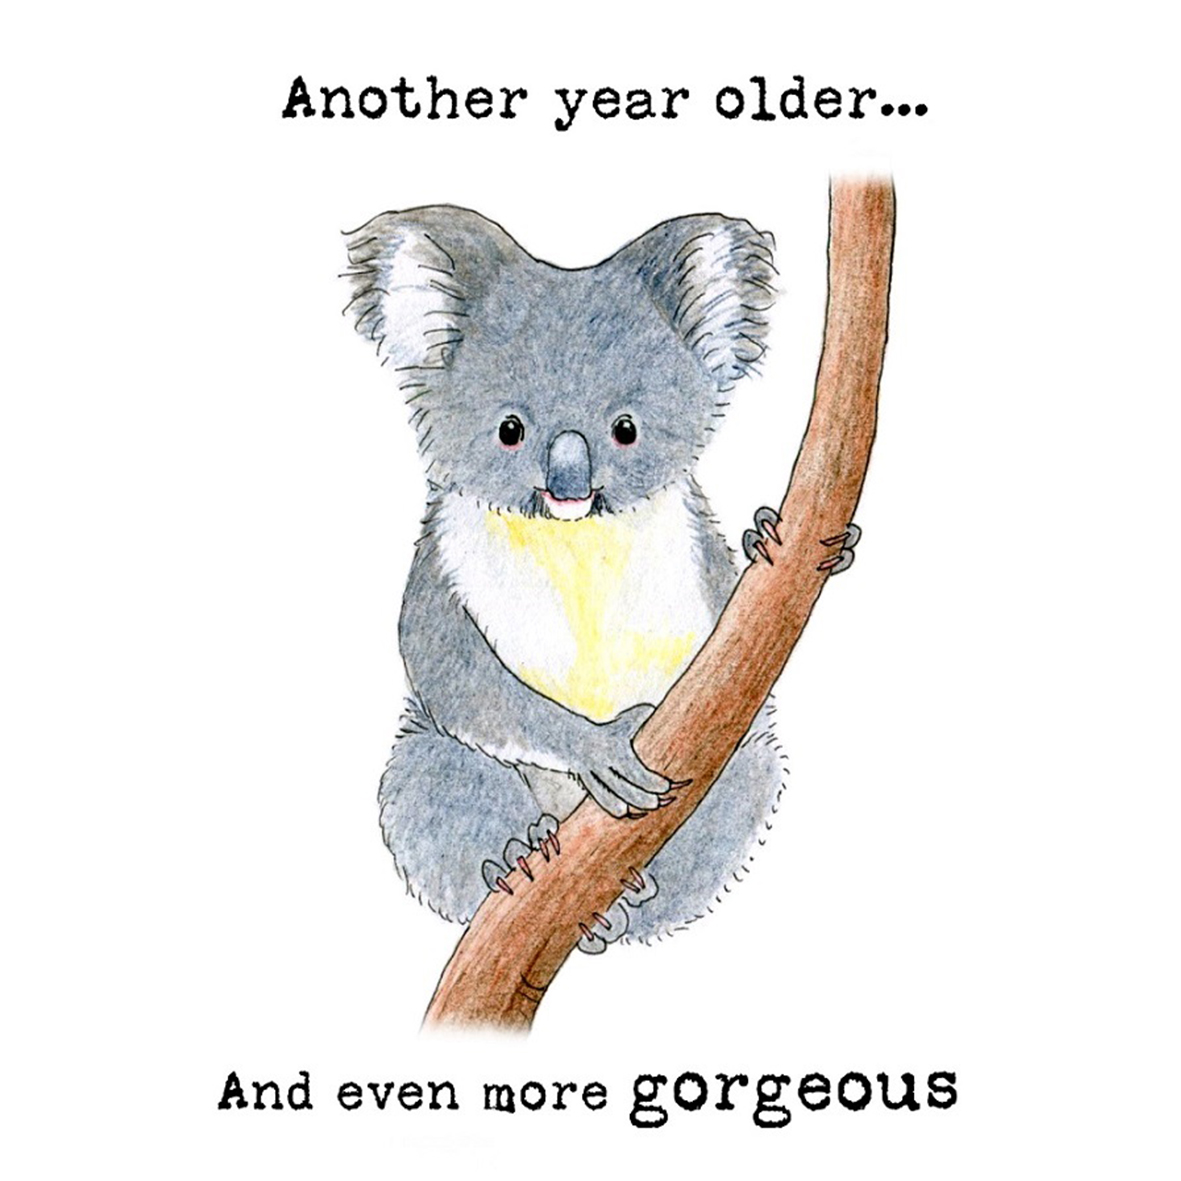 Two new koala birthday cards